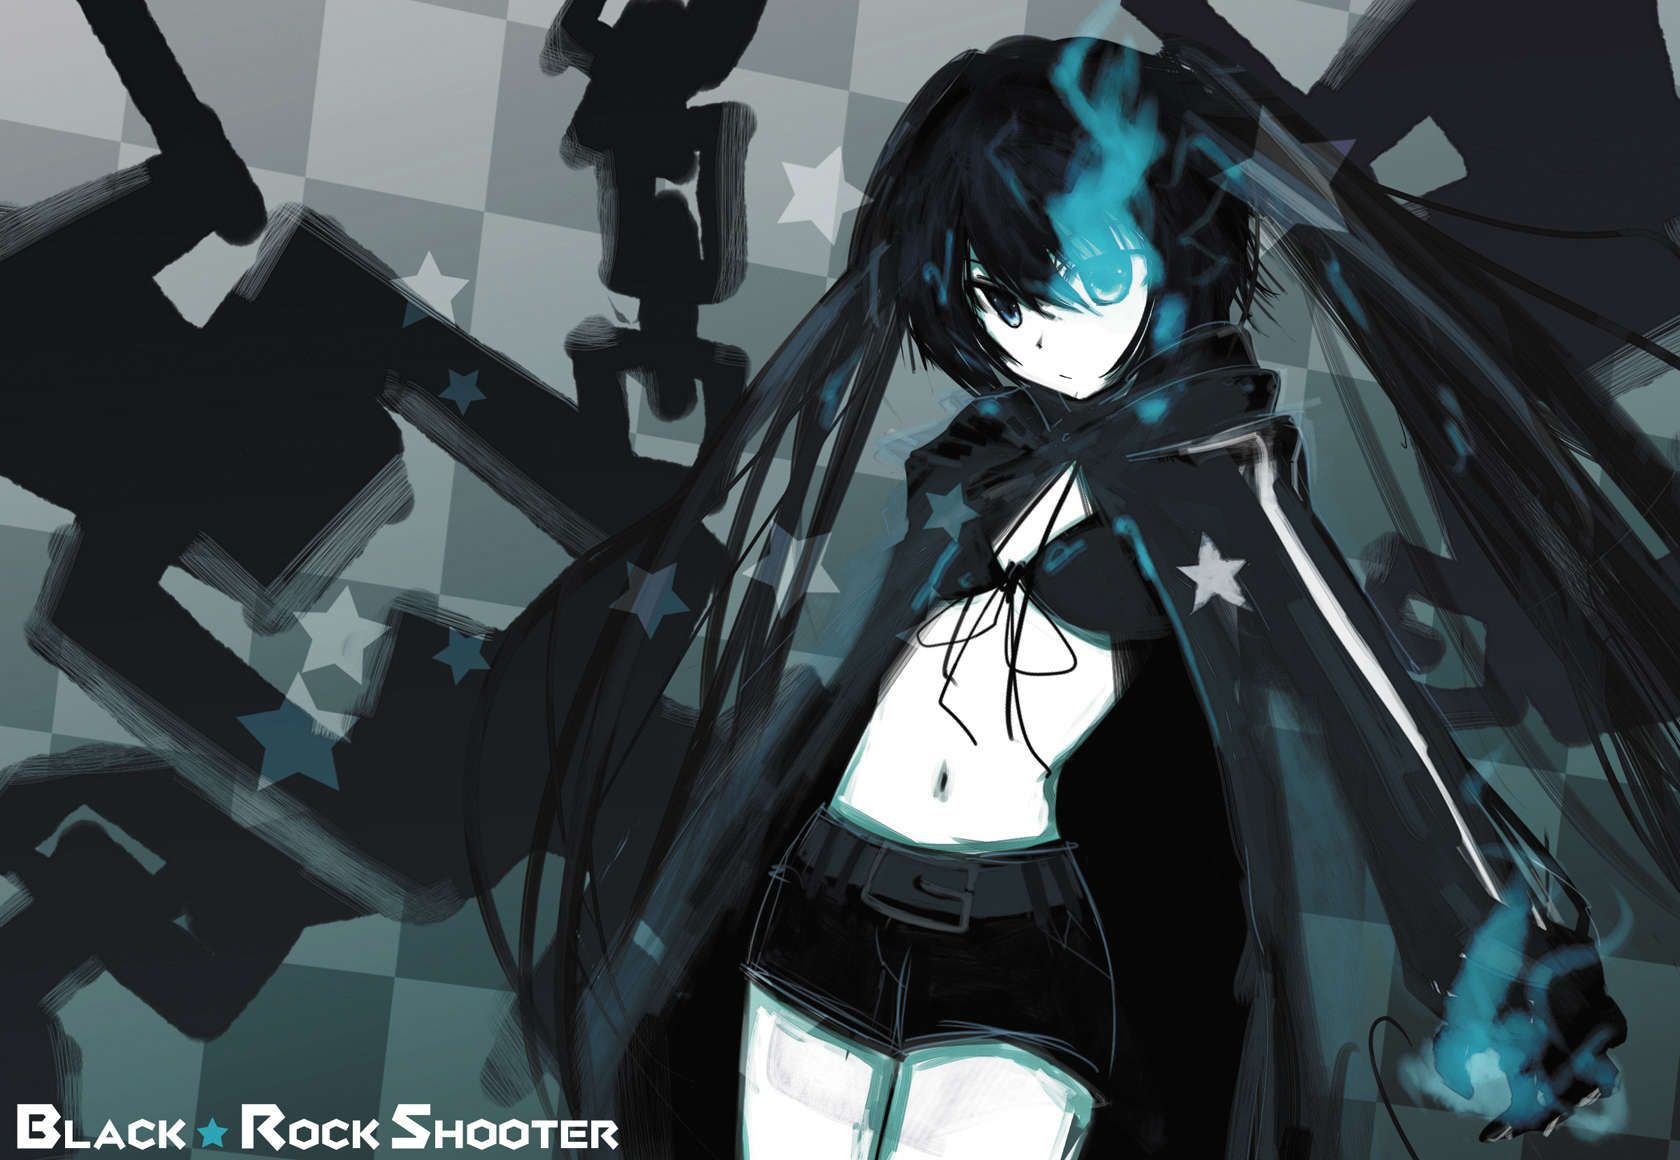 black rock shooter wallpaper 1680a—1160